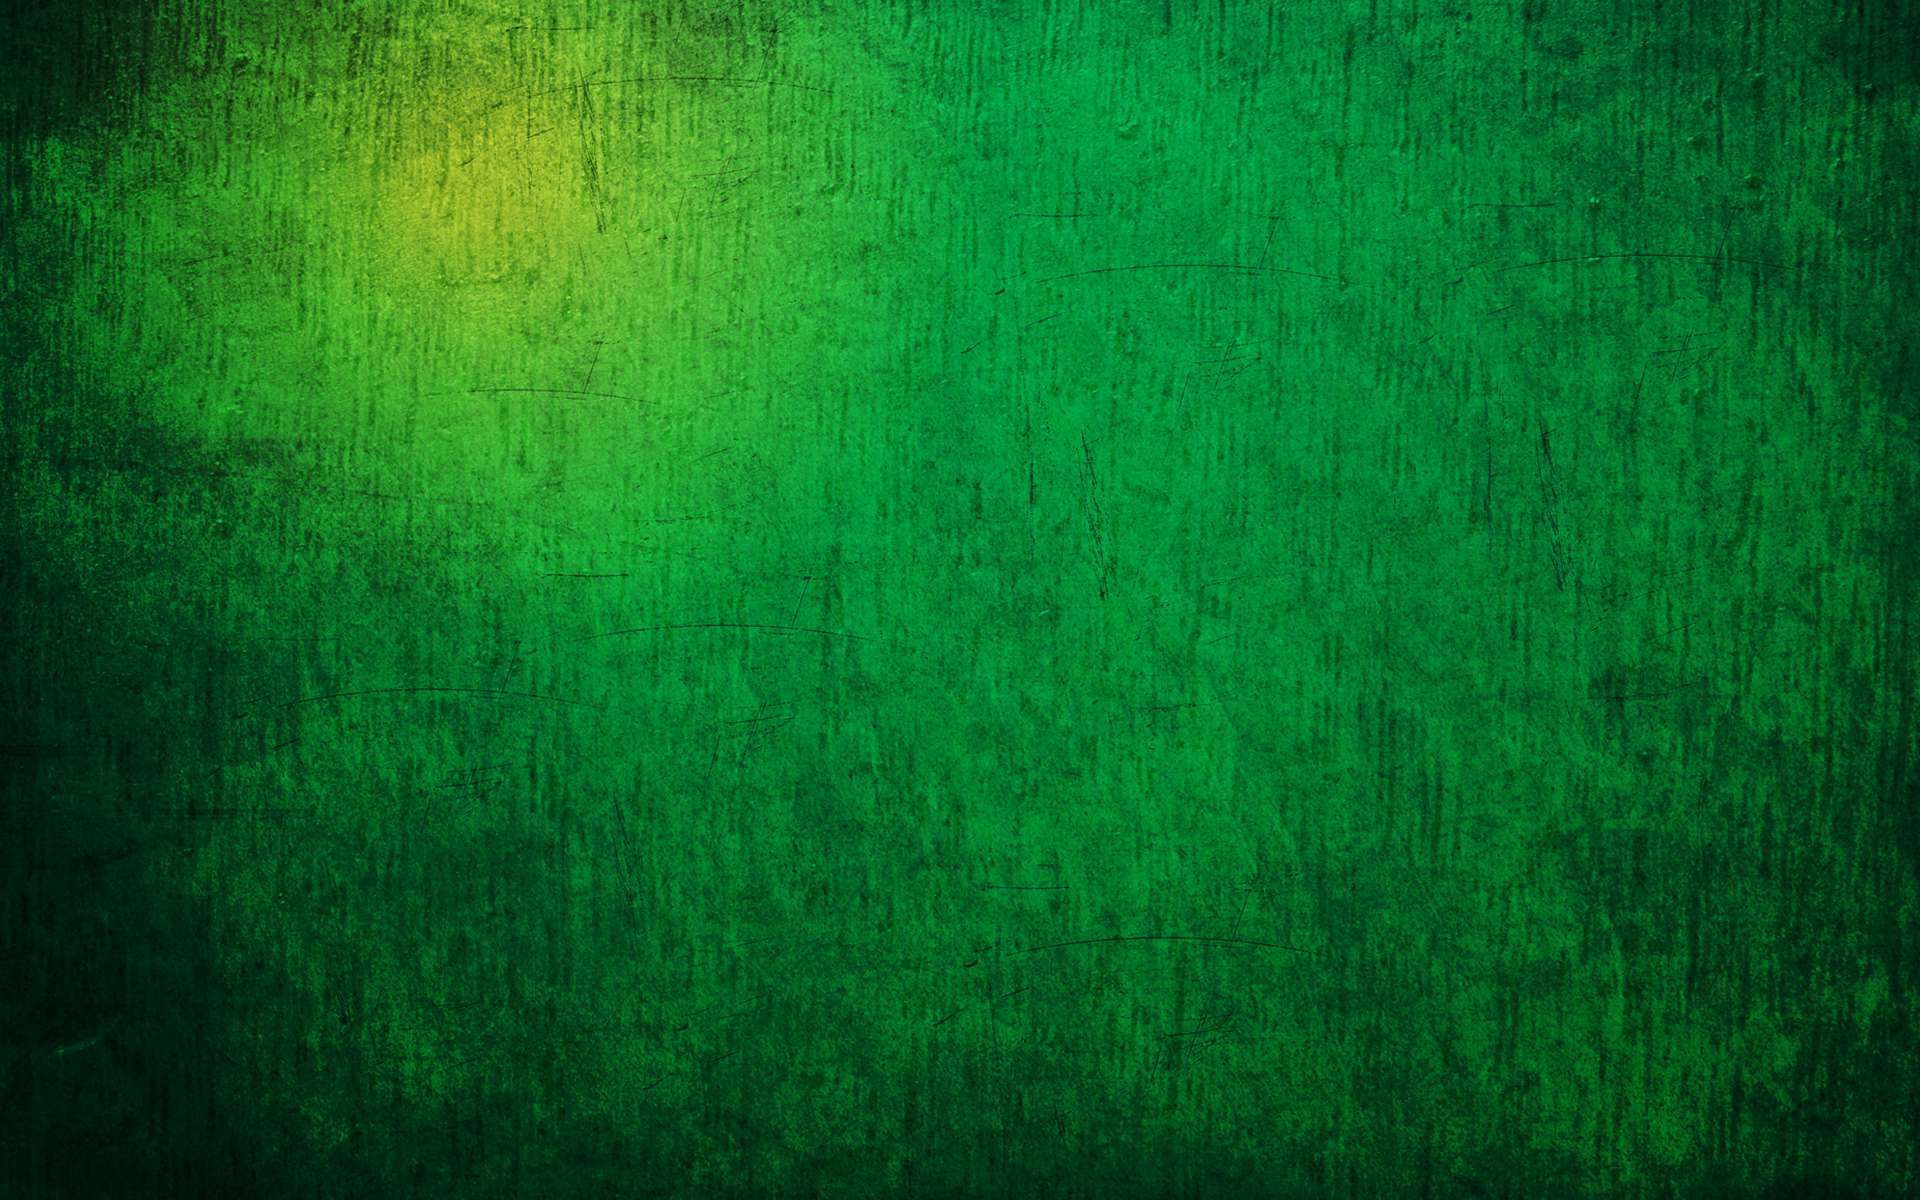 Green Wallpapers 4 - 1920 X 1200 | stmed.net